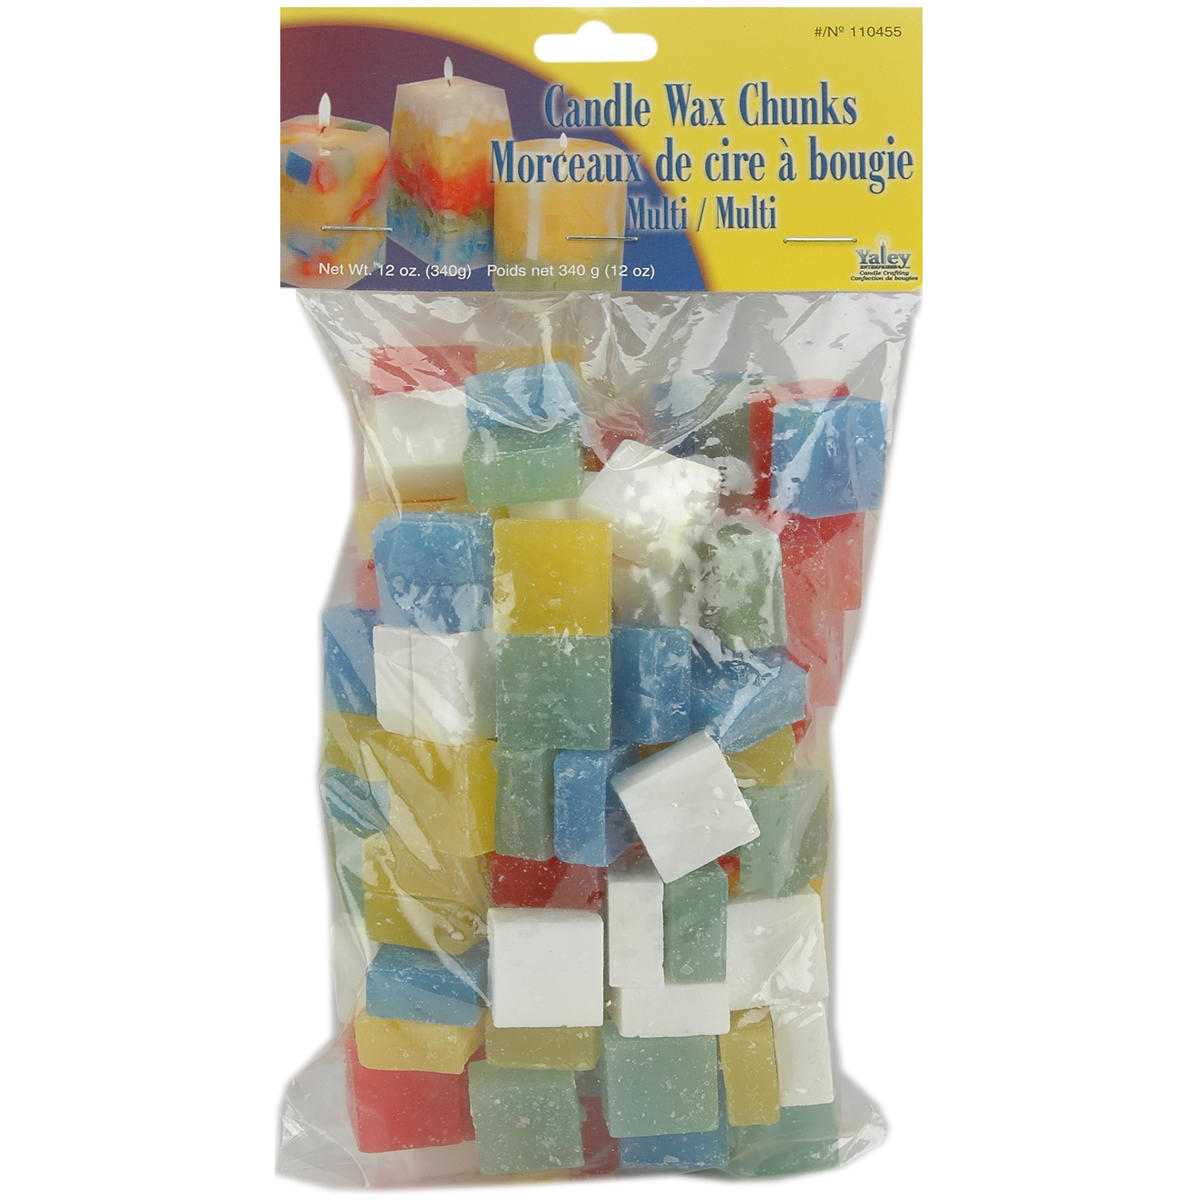 Candle Wax Chunks, 12oz, Multi